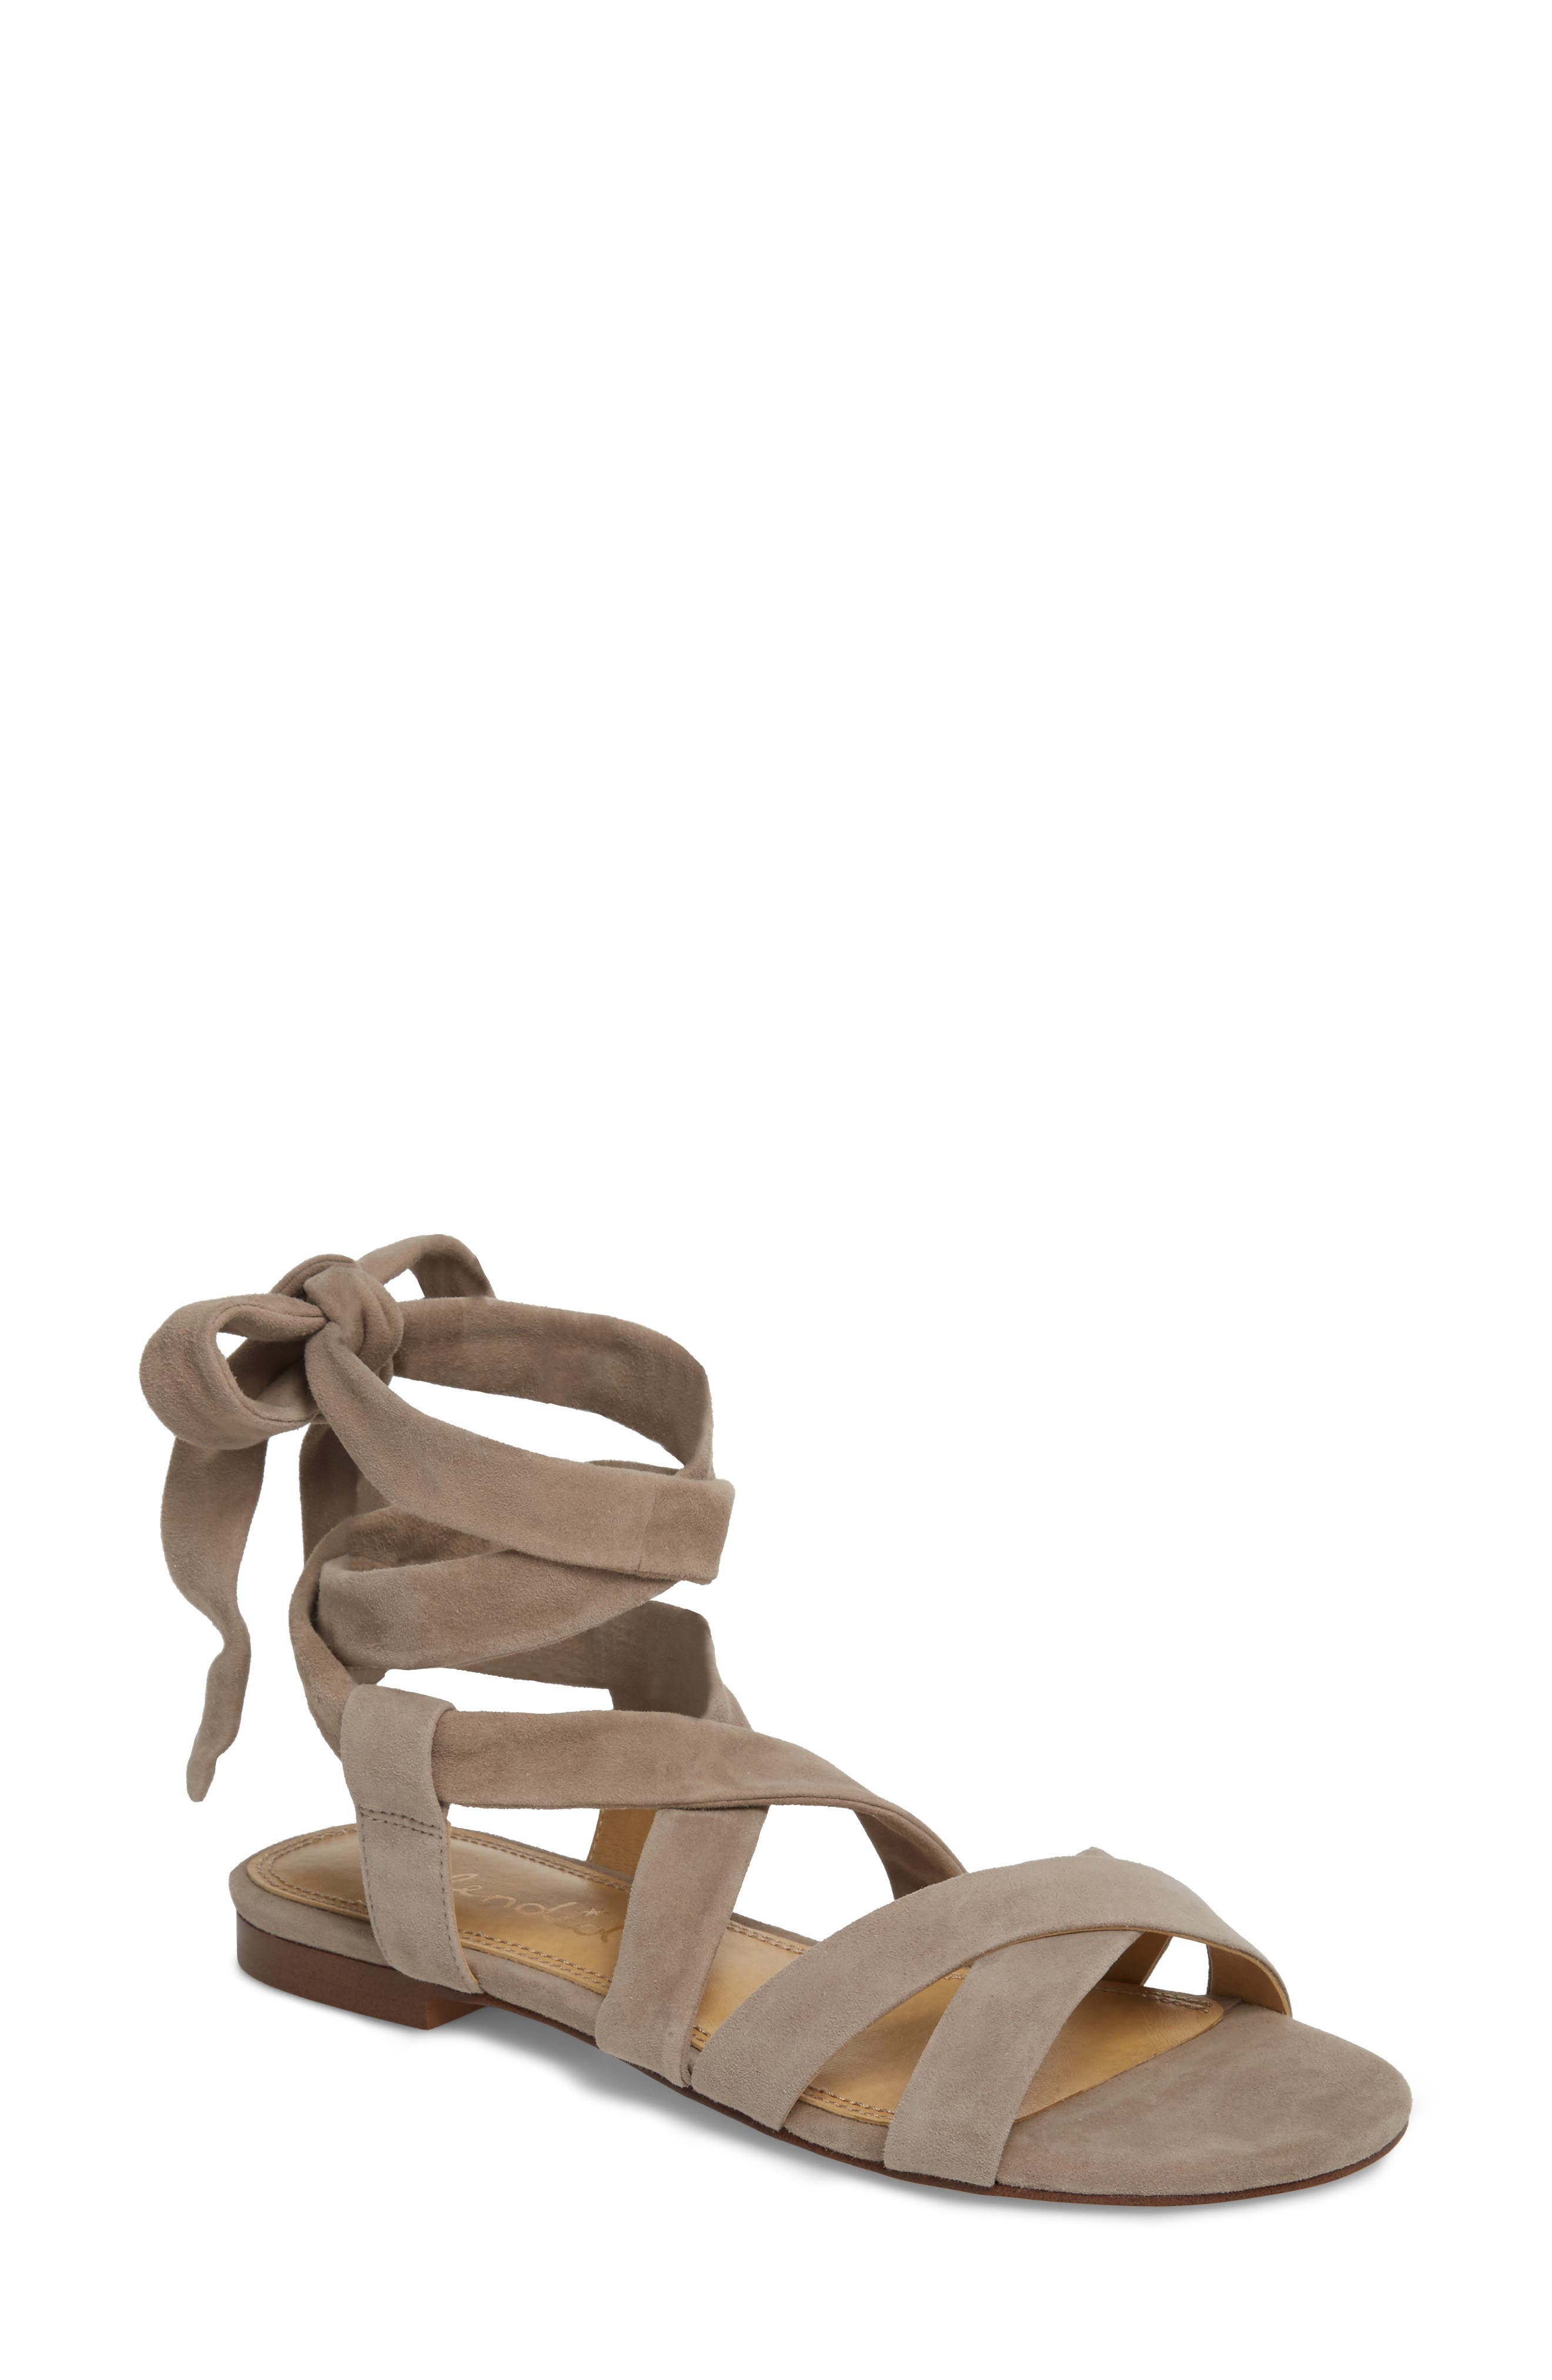 Feodora Ankle Wrap Sandal,                         Main,                         color, TAUPE SUEDE